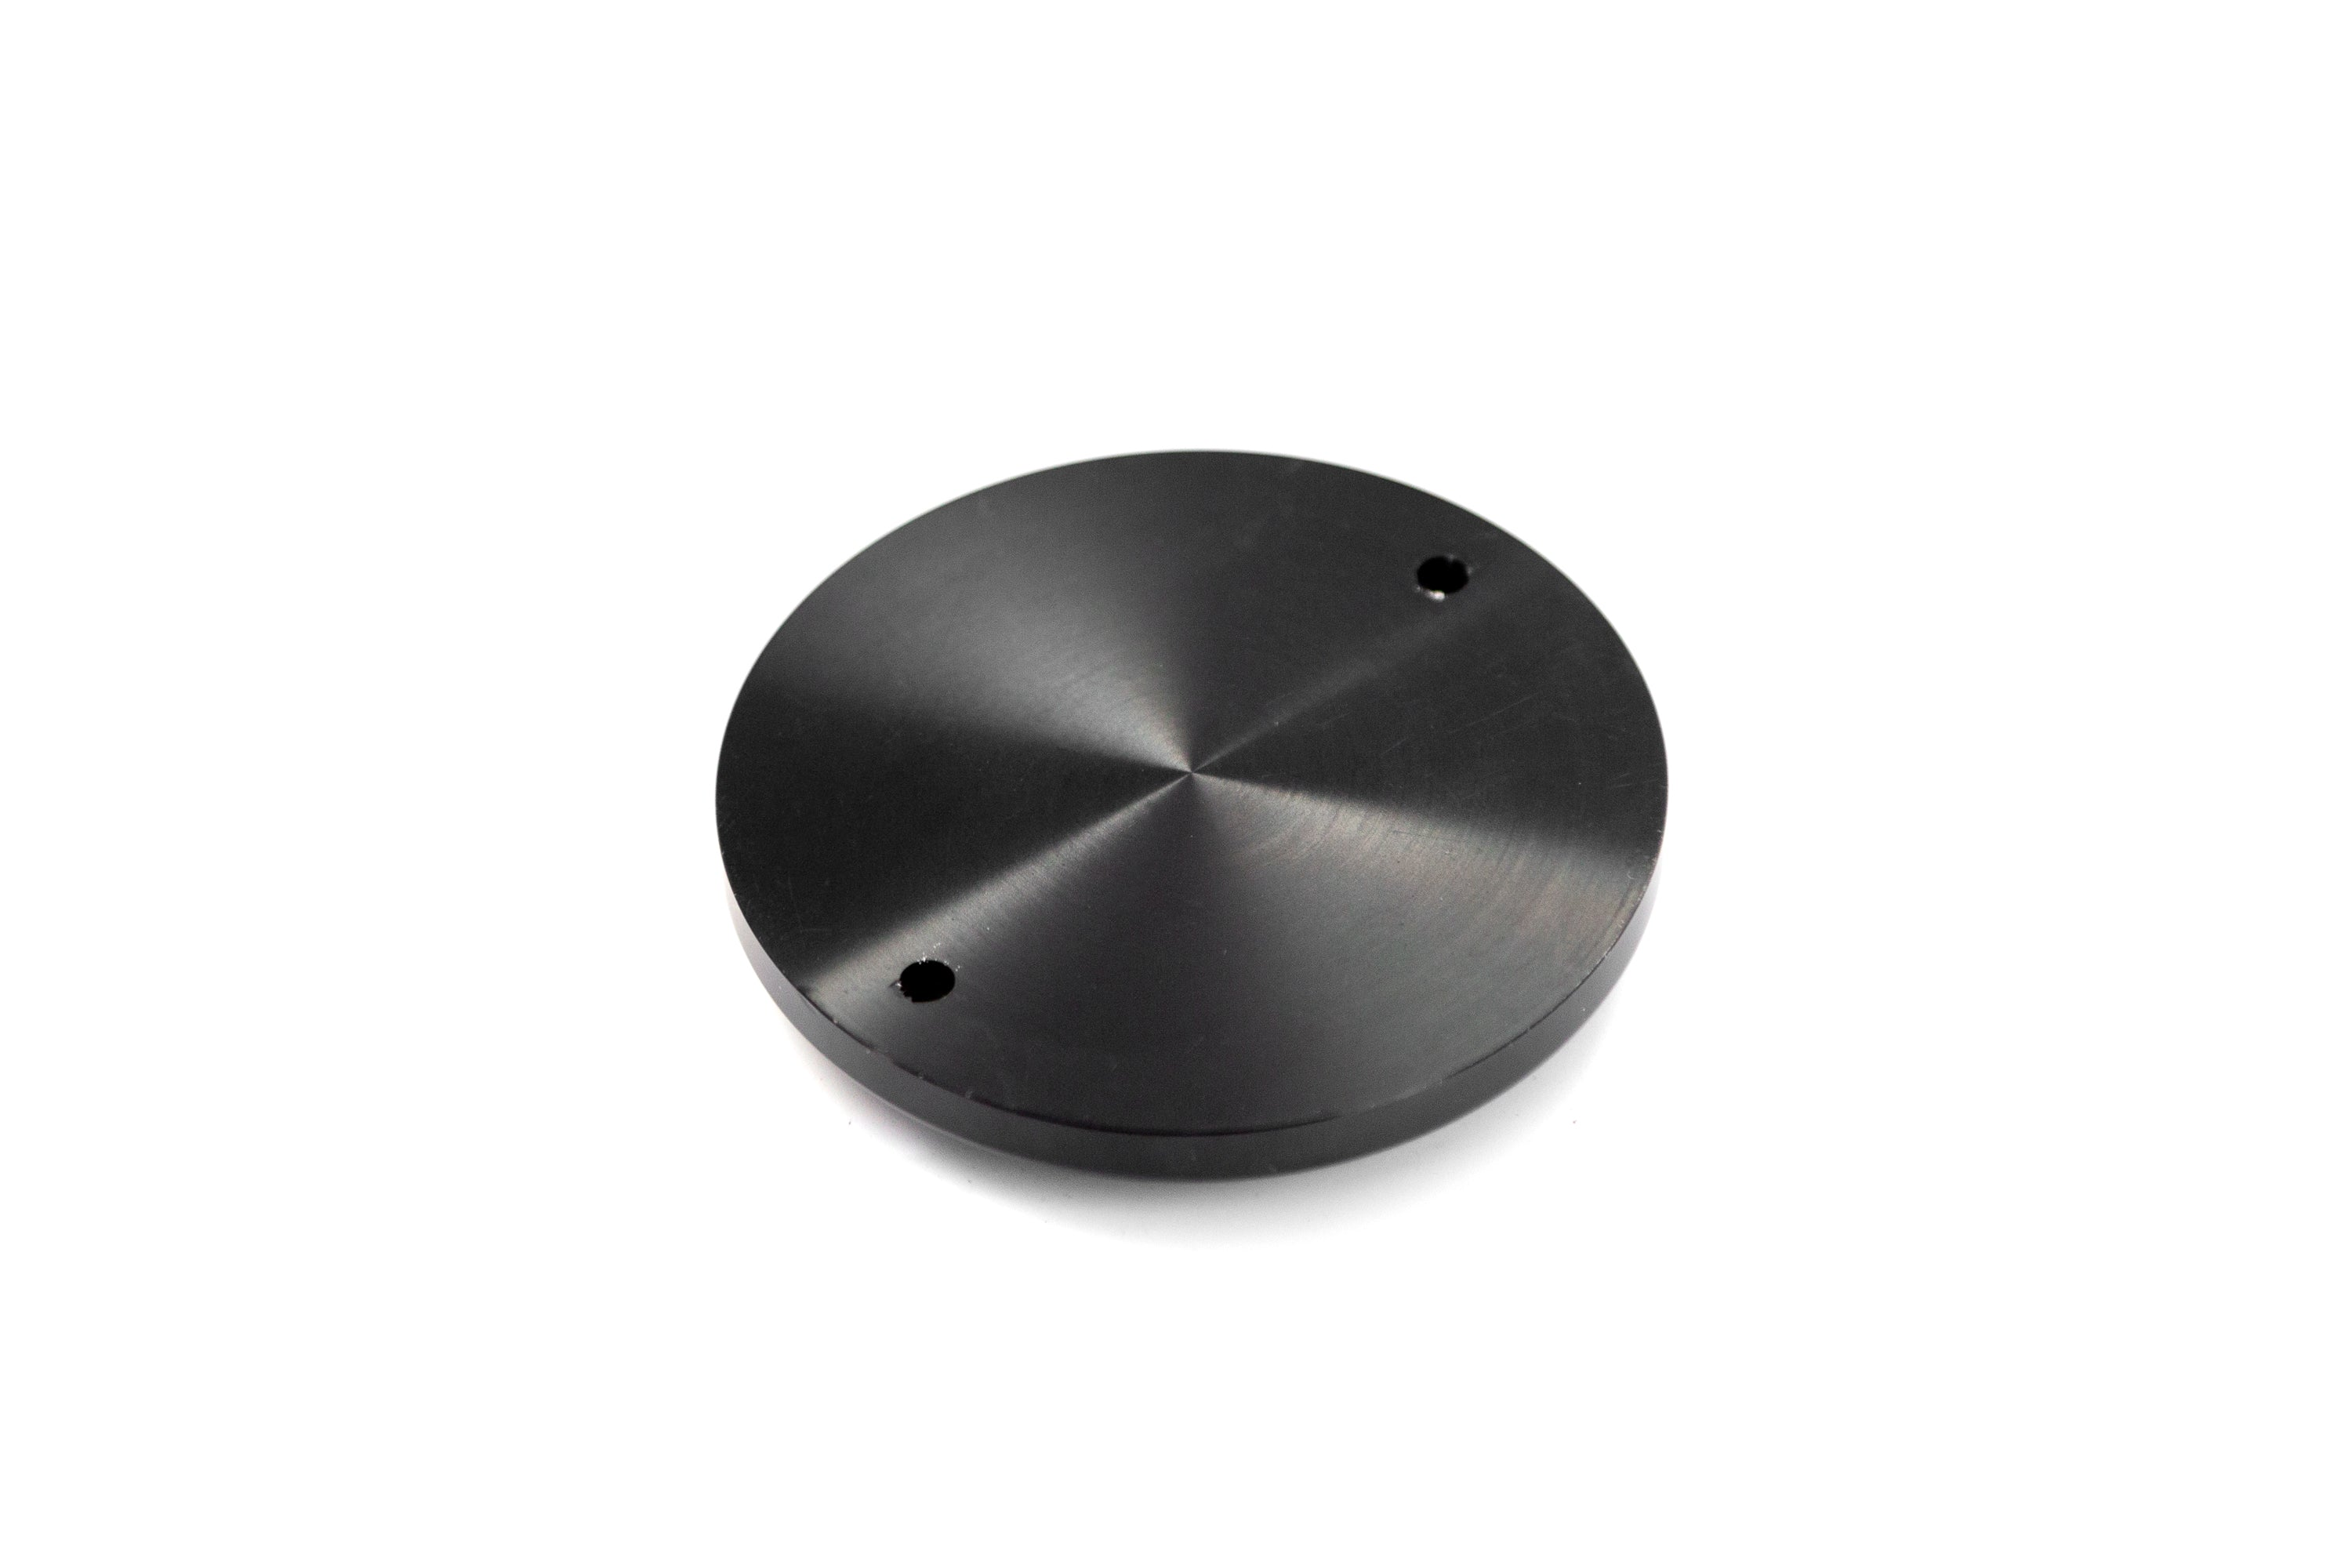 2-Hole Ignition Cover - MC Parts - Prism Supply